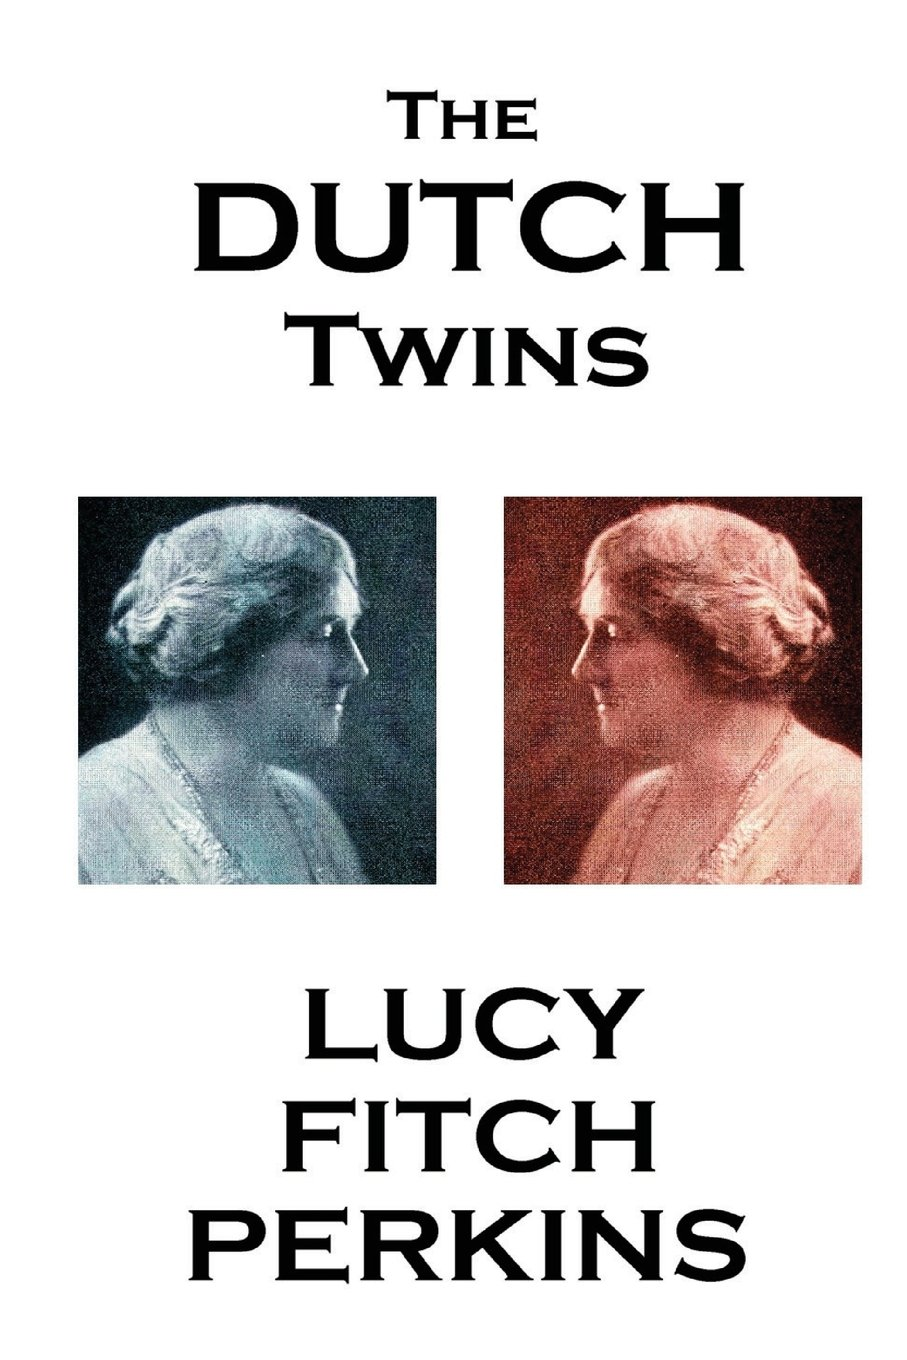 Lucy Fitch Perkins - The Dutch Twins: Lucy Fitch Perkins ...